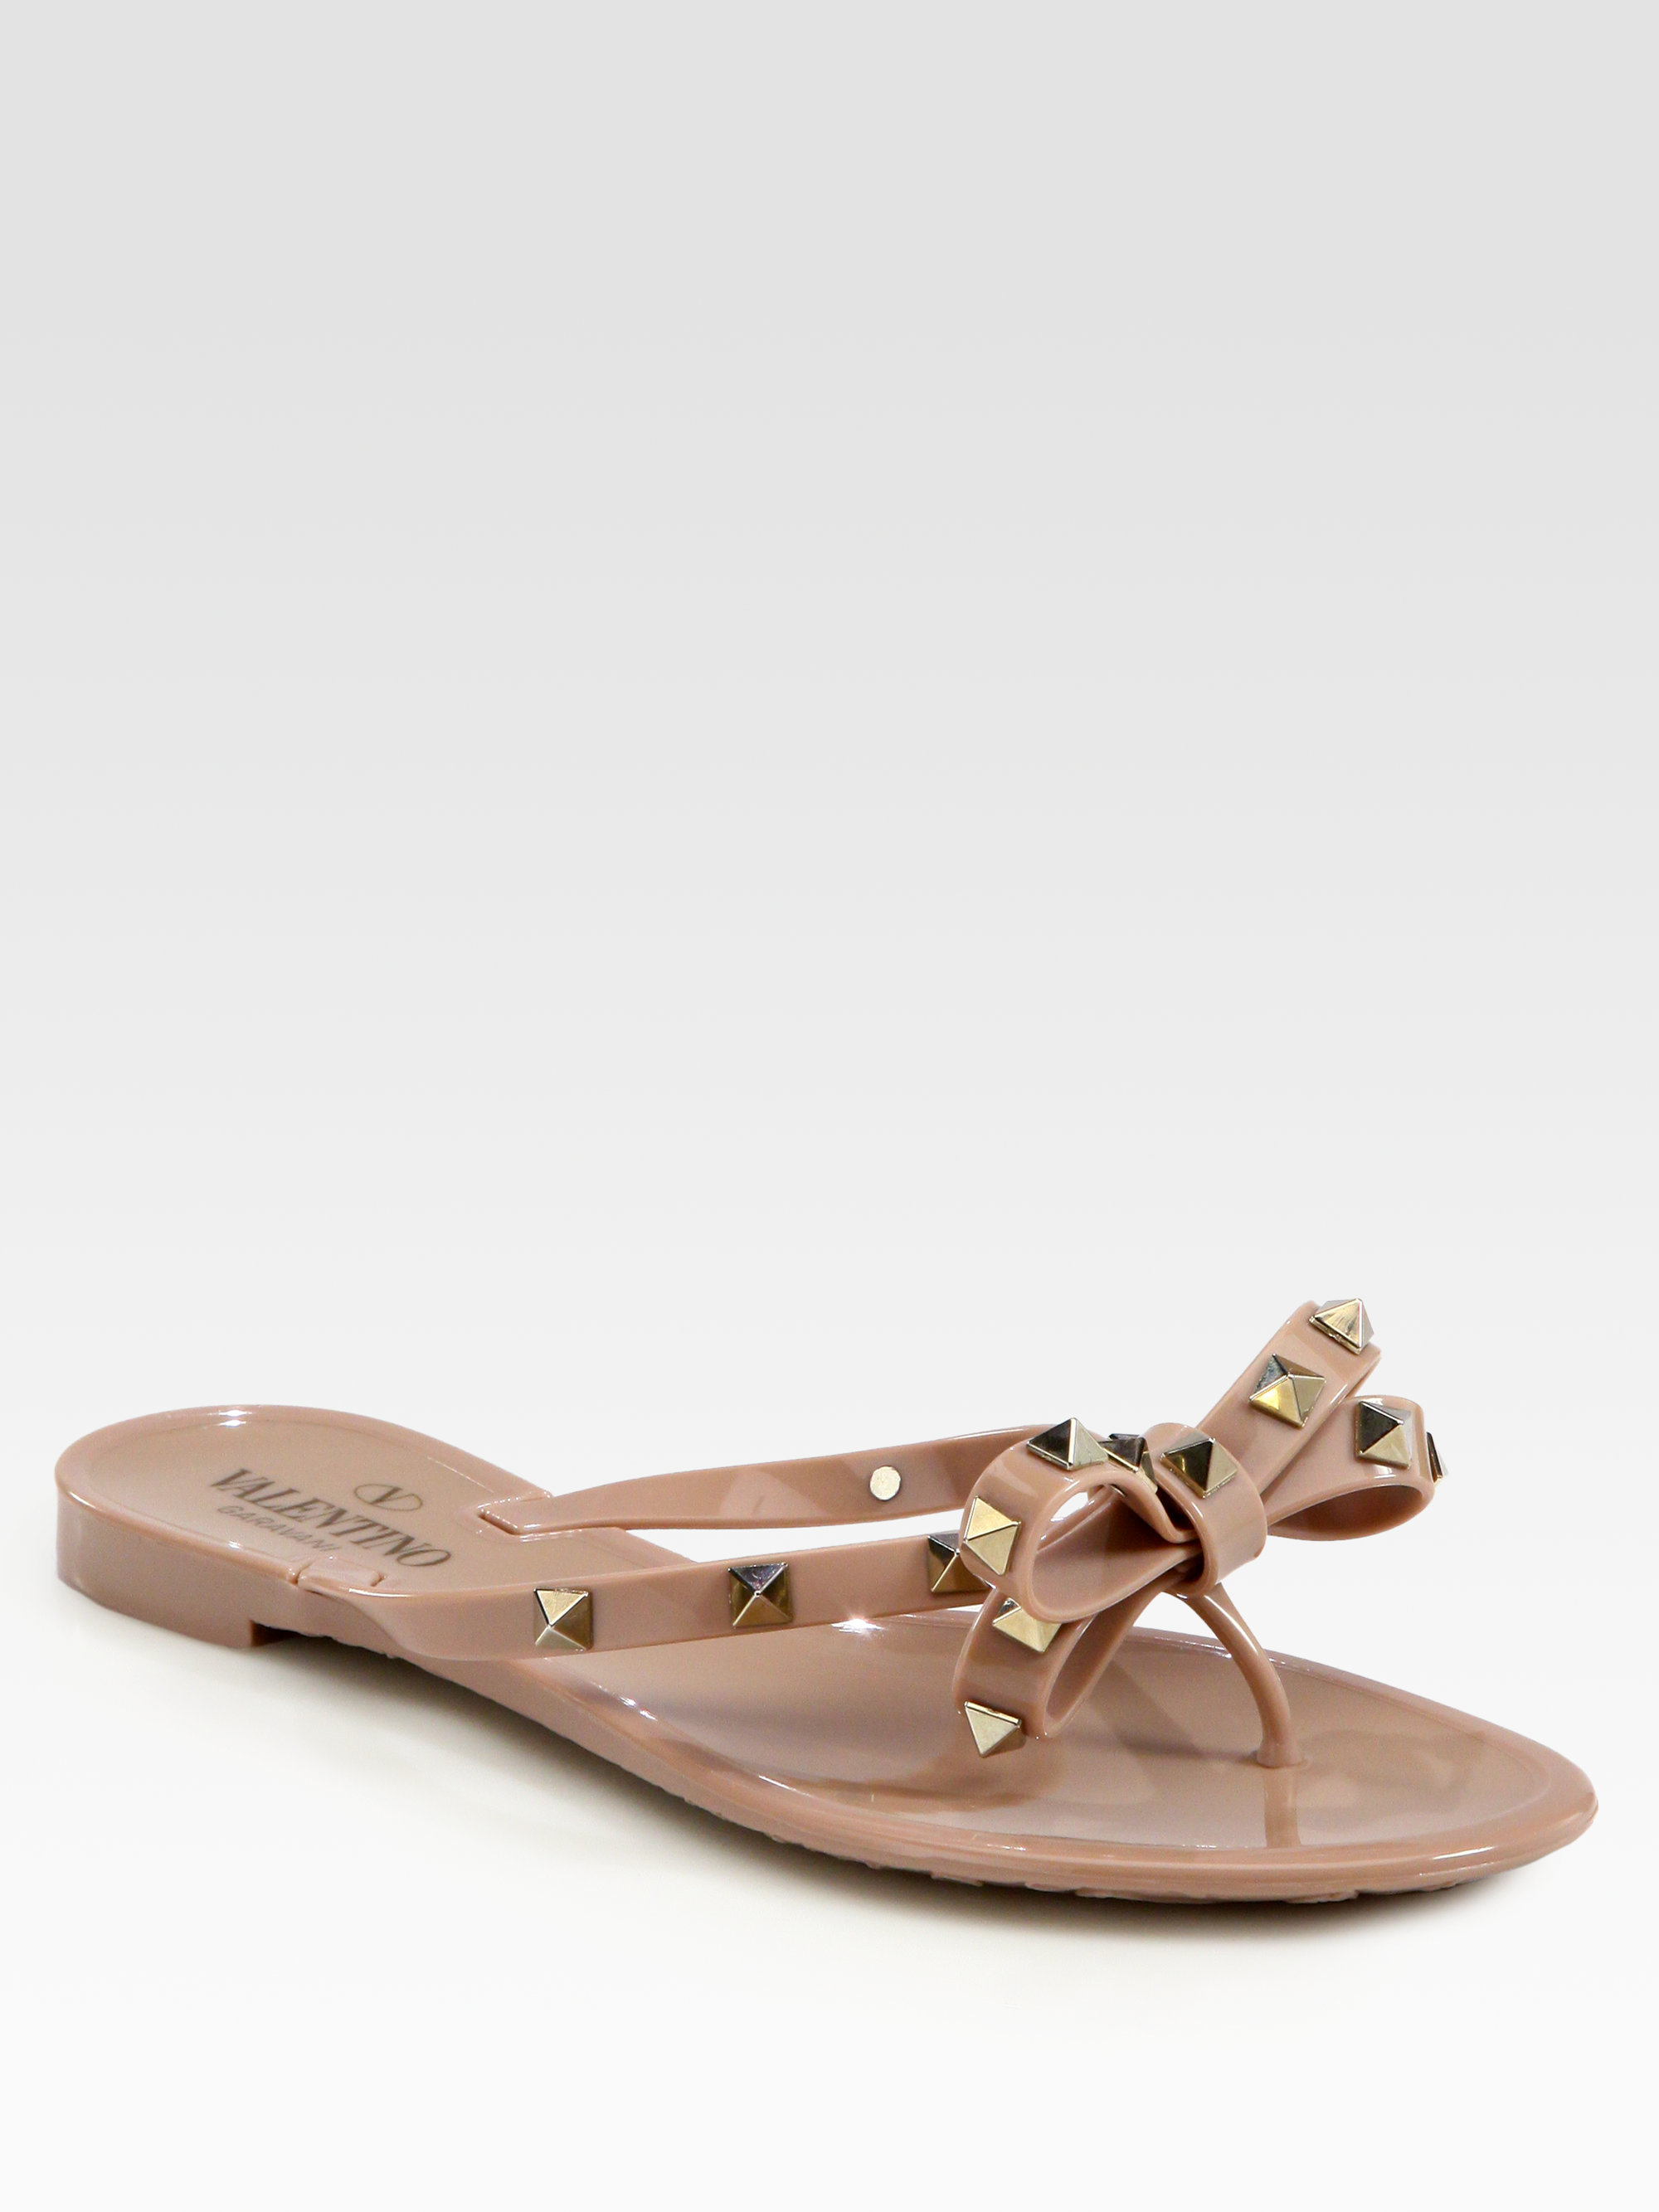 be1d22eb980e Lyst - Valentino Rockstud Studded Thong Bow Jelly Flip Flops in Black